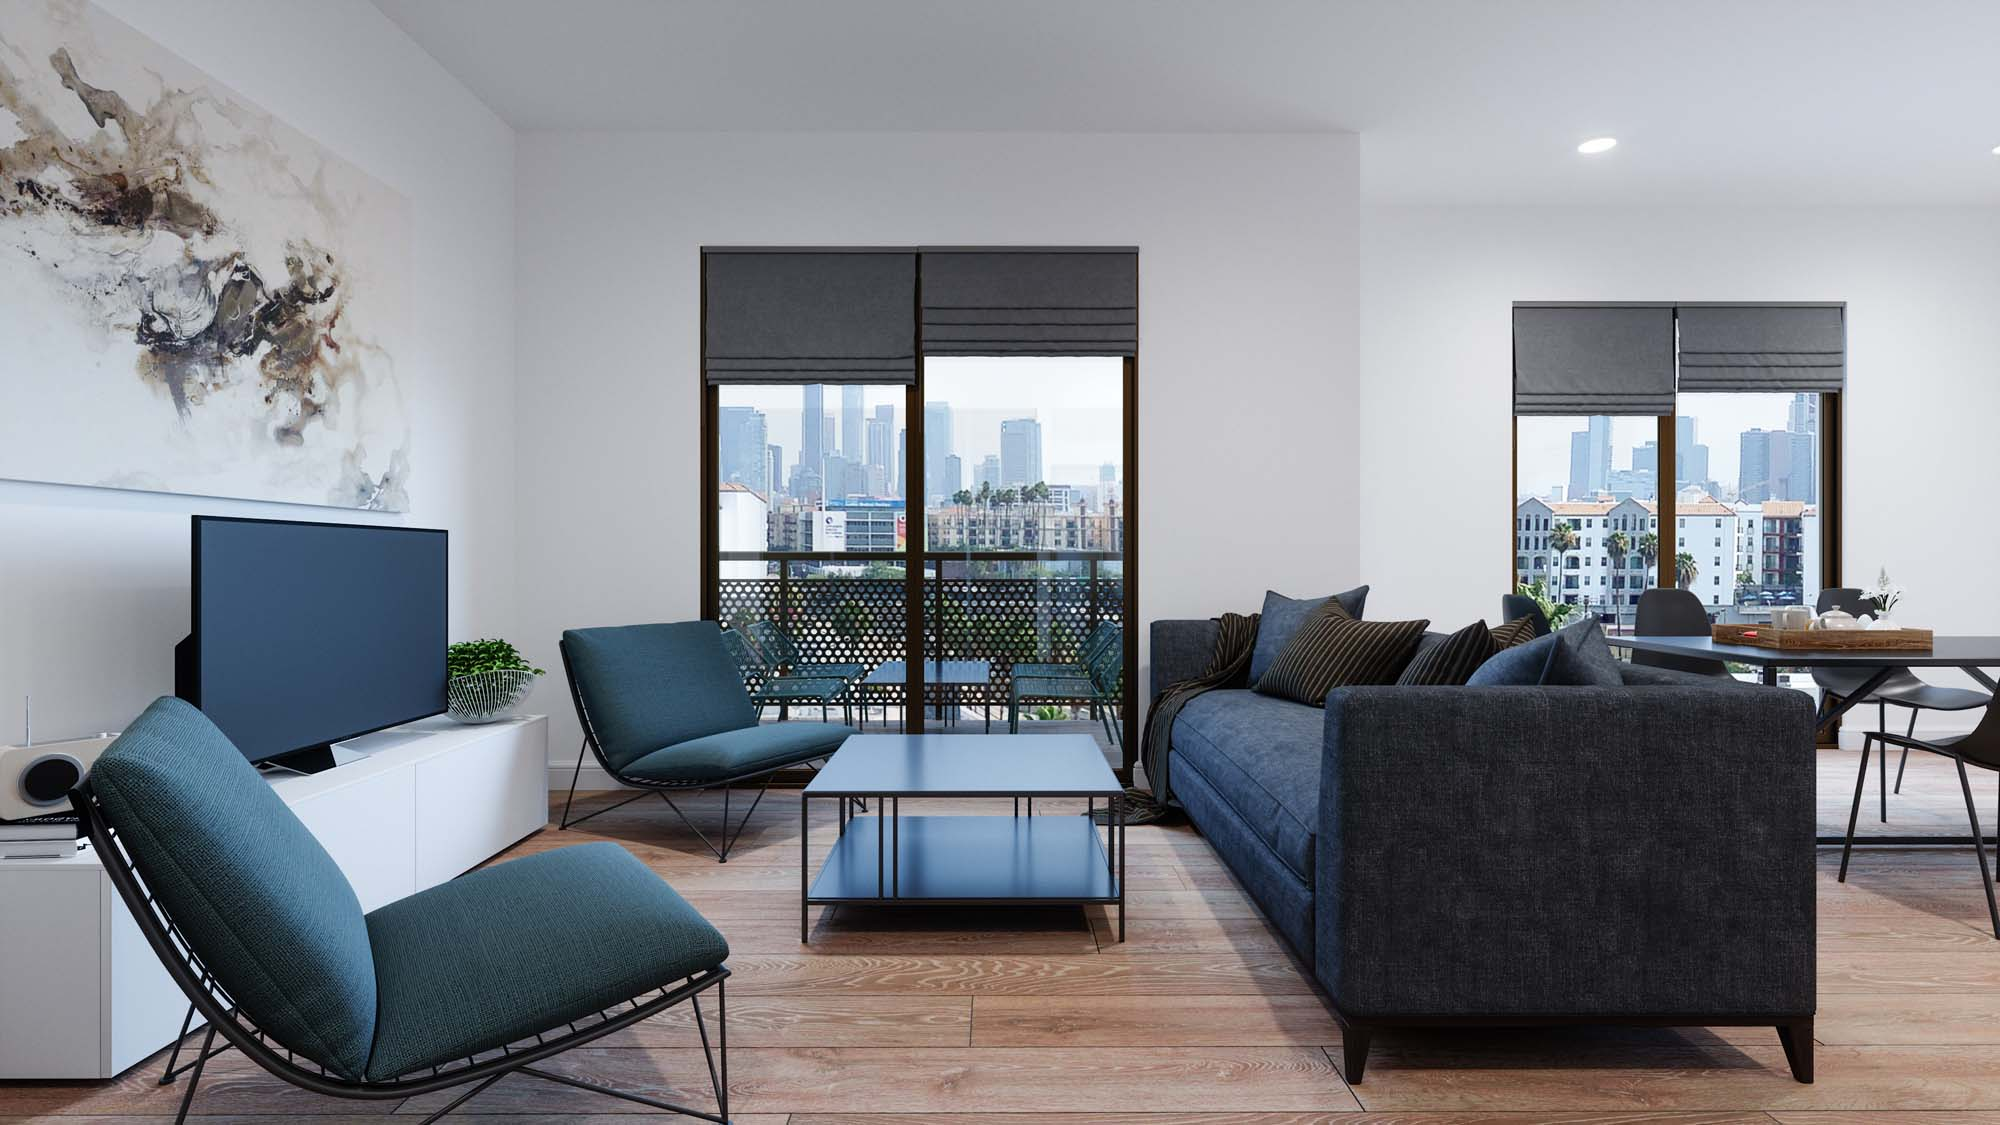 living room with wood-style floors, couch and lounge seating, tv, windows, and balcony access